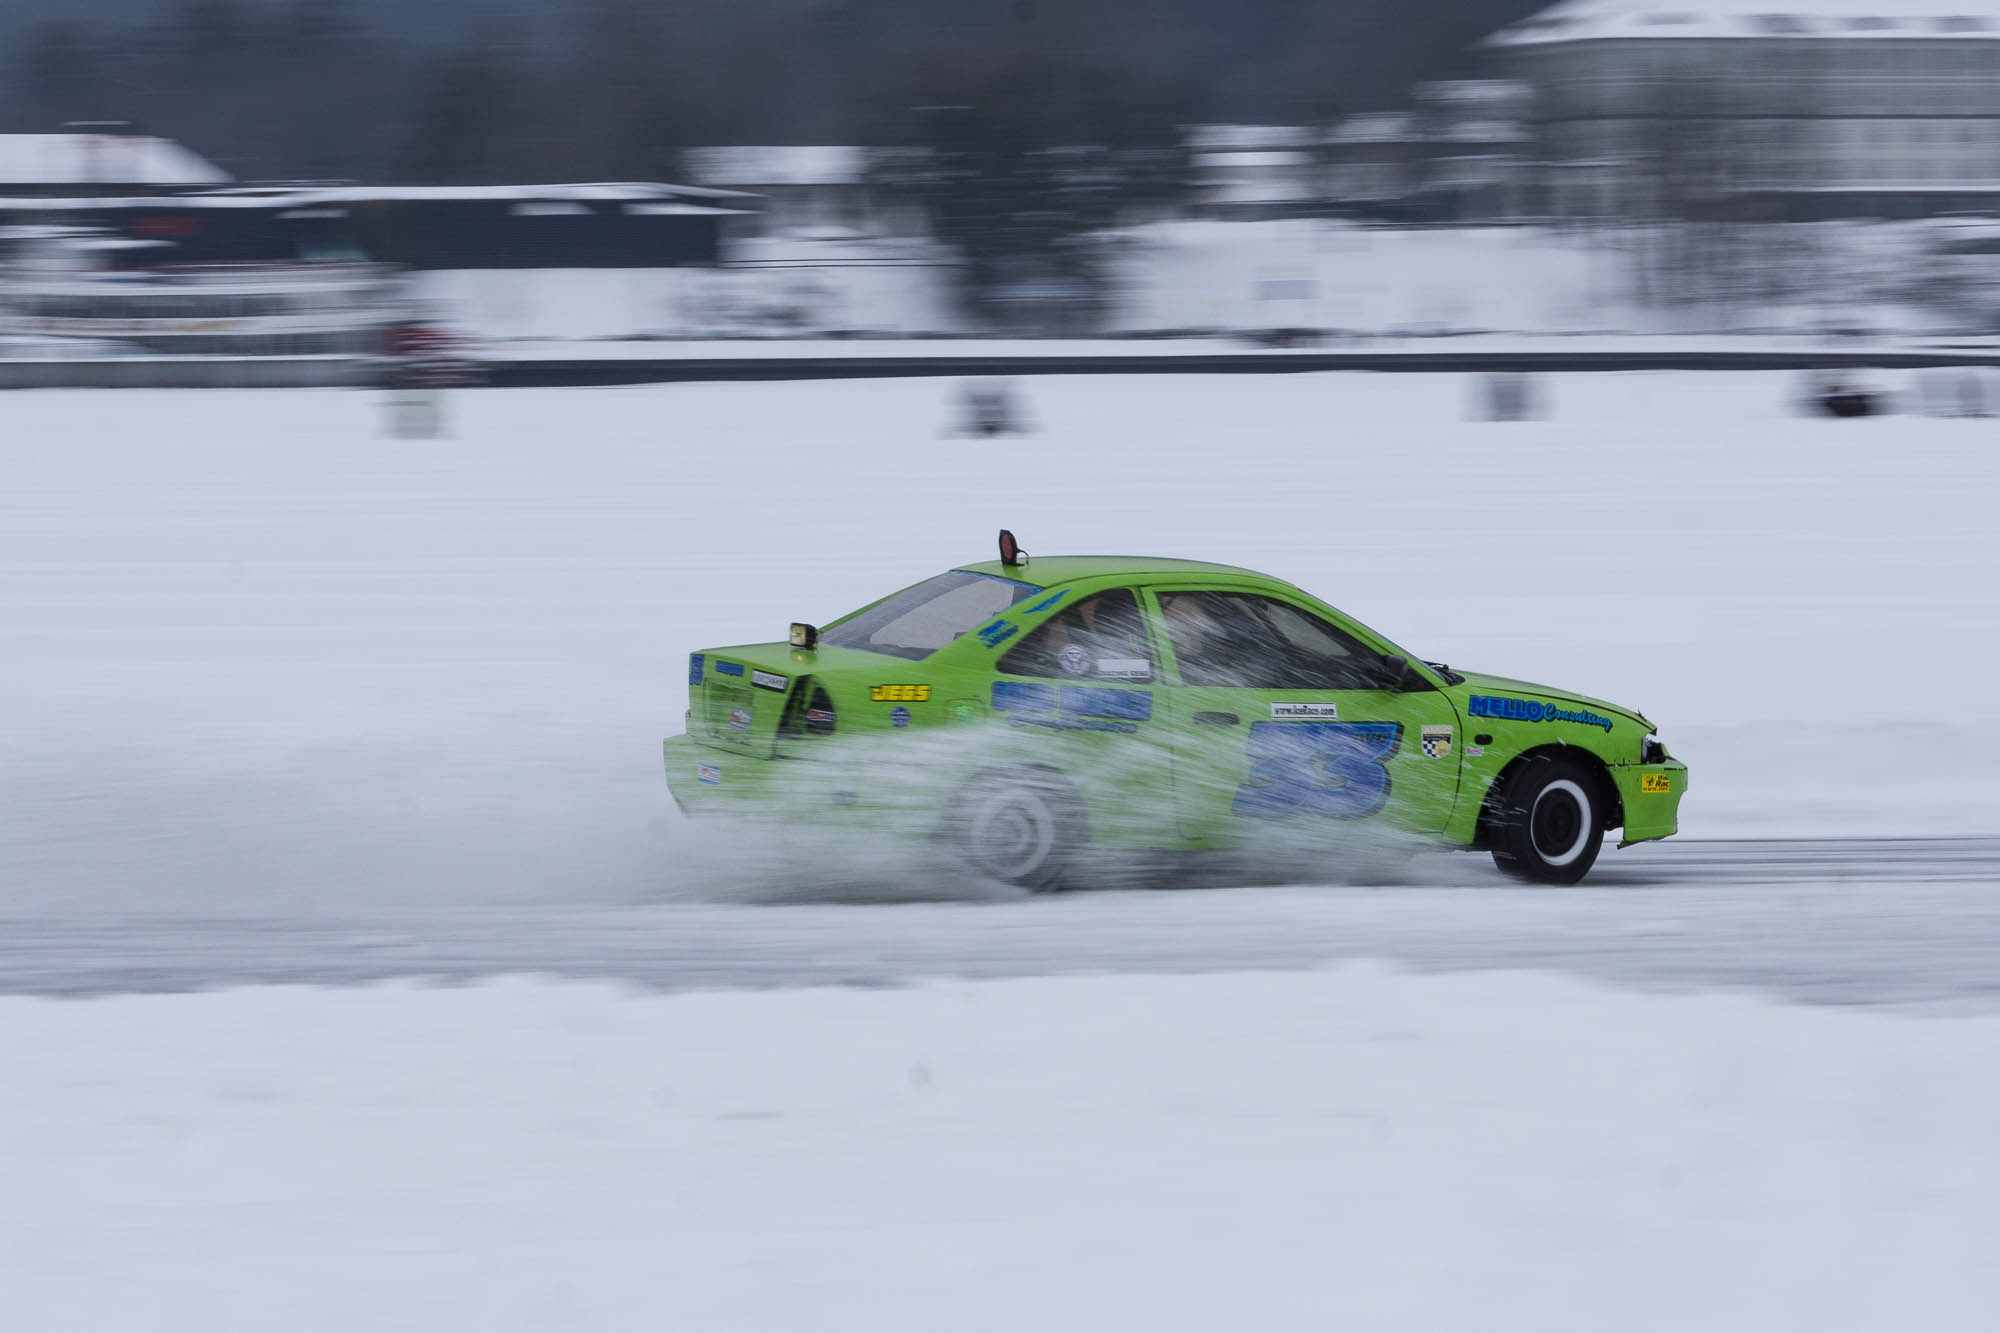 Green Car Racing Ice Races